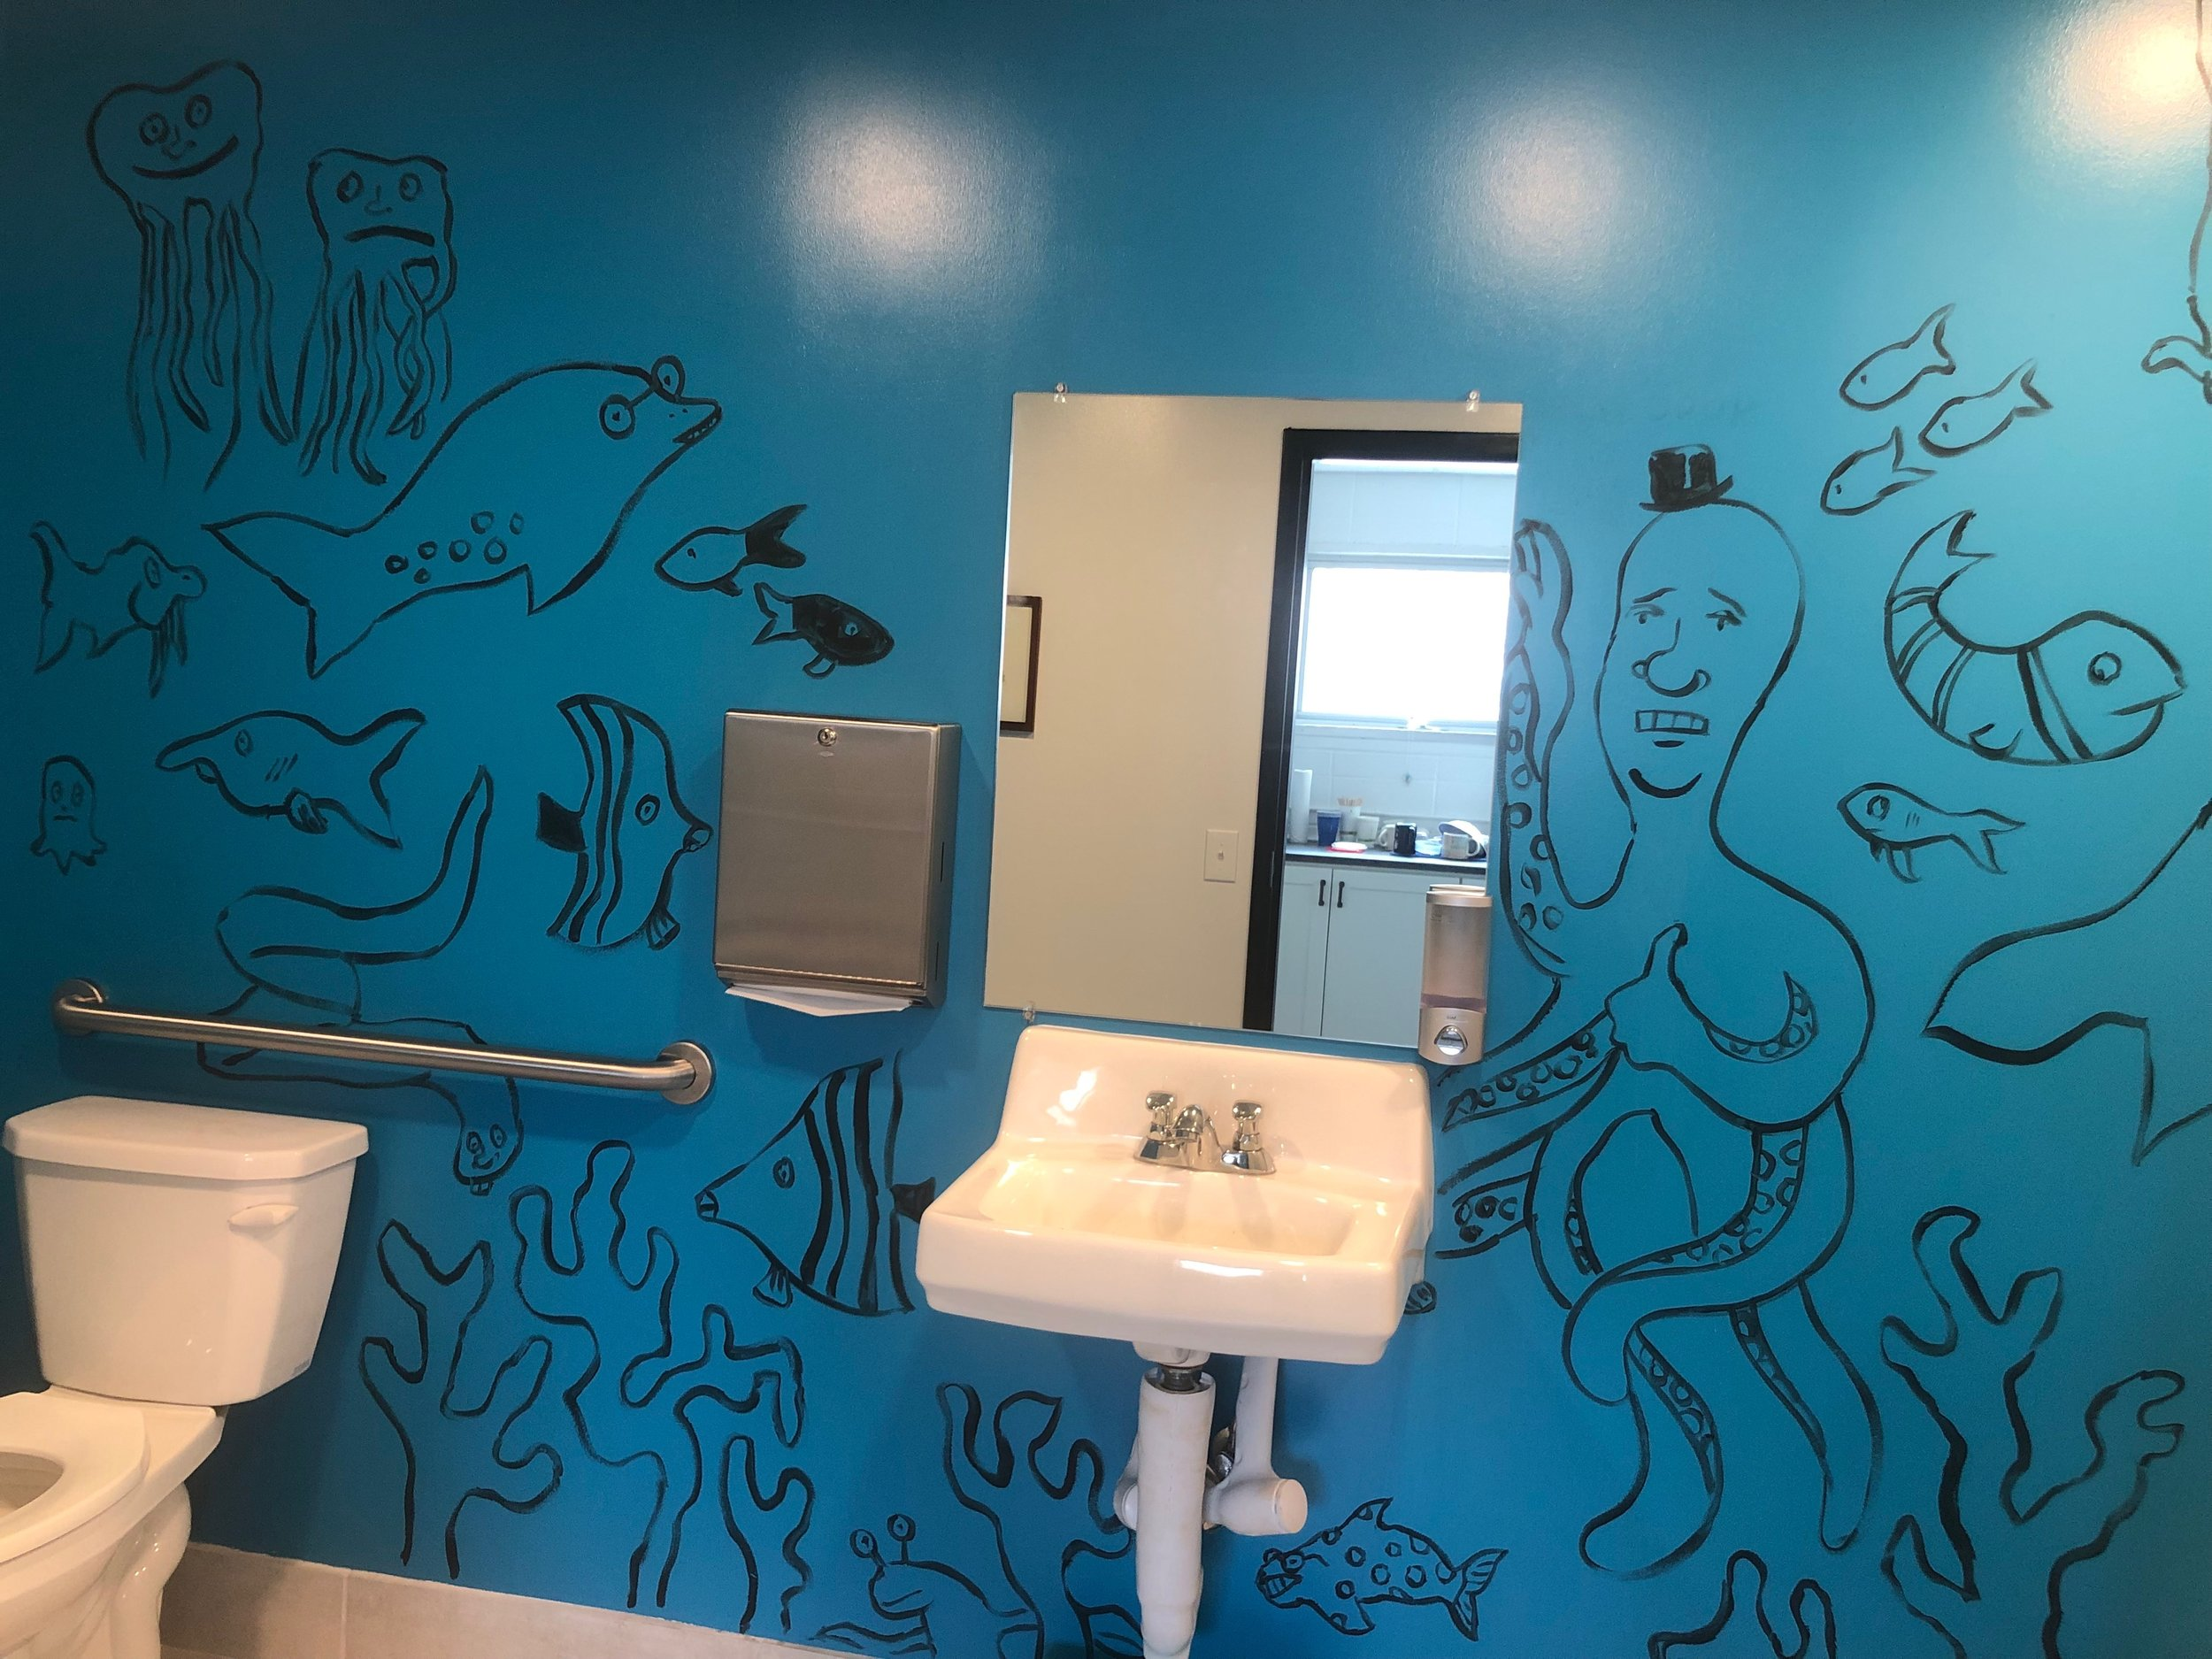 This is MOI's bathroom after Dave Egger's visited and helped raise money for the next program year.